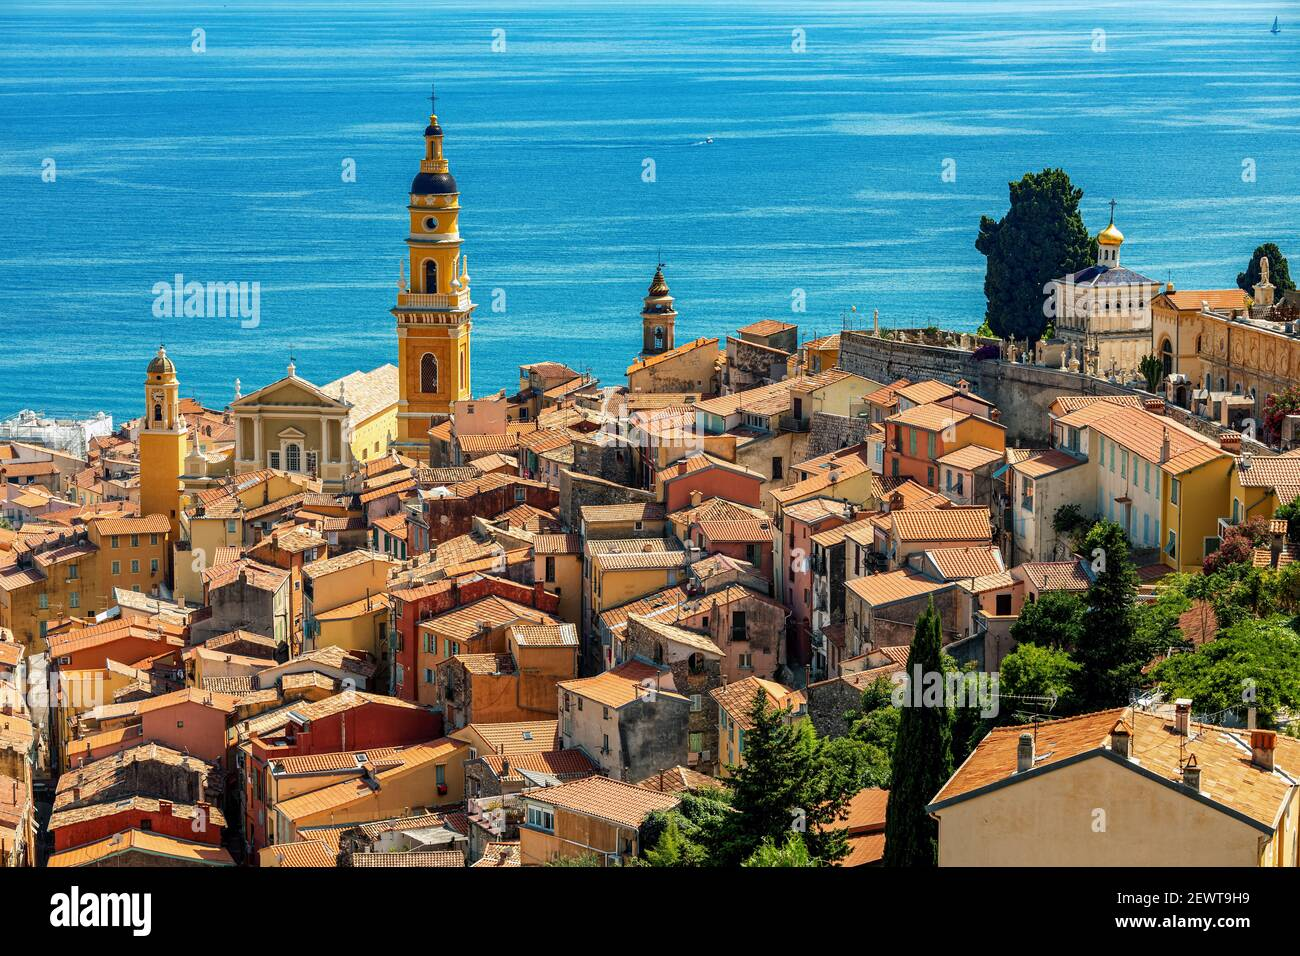 View from above on old town of Menton overlooking Mediterranean sea on French Riviera. Stock Photo